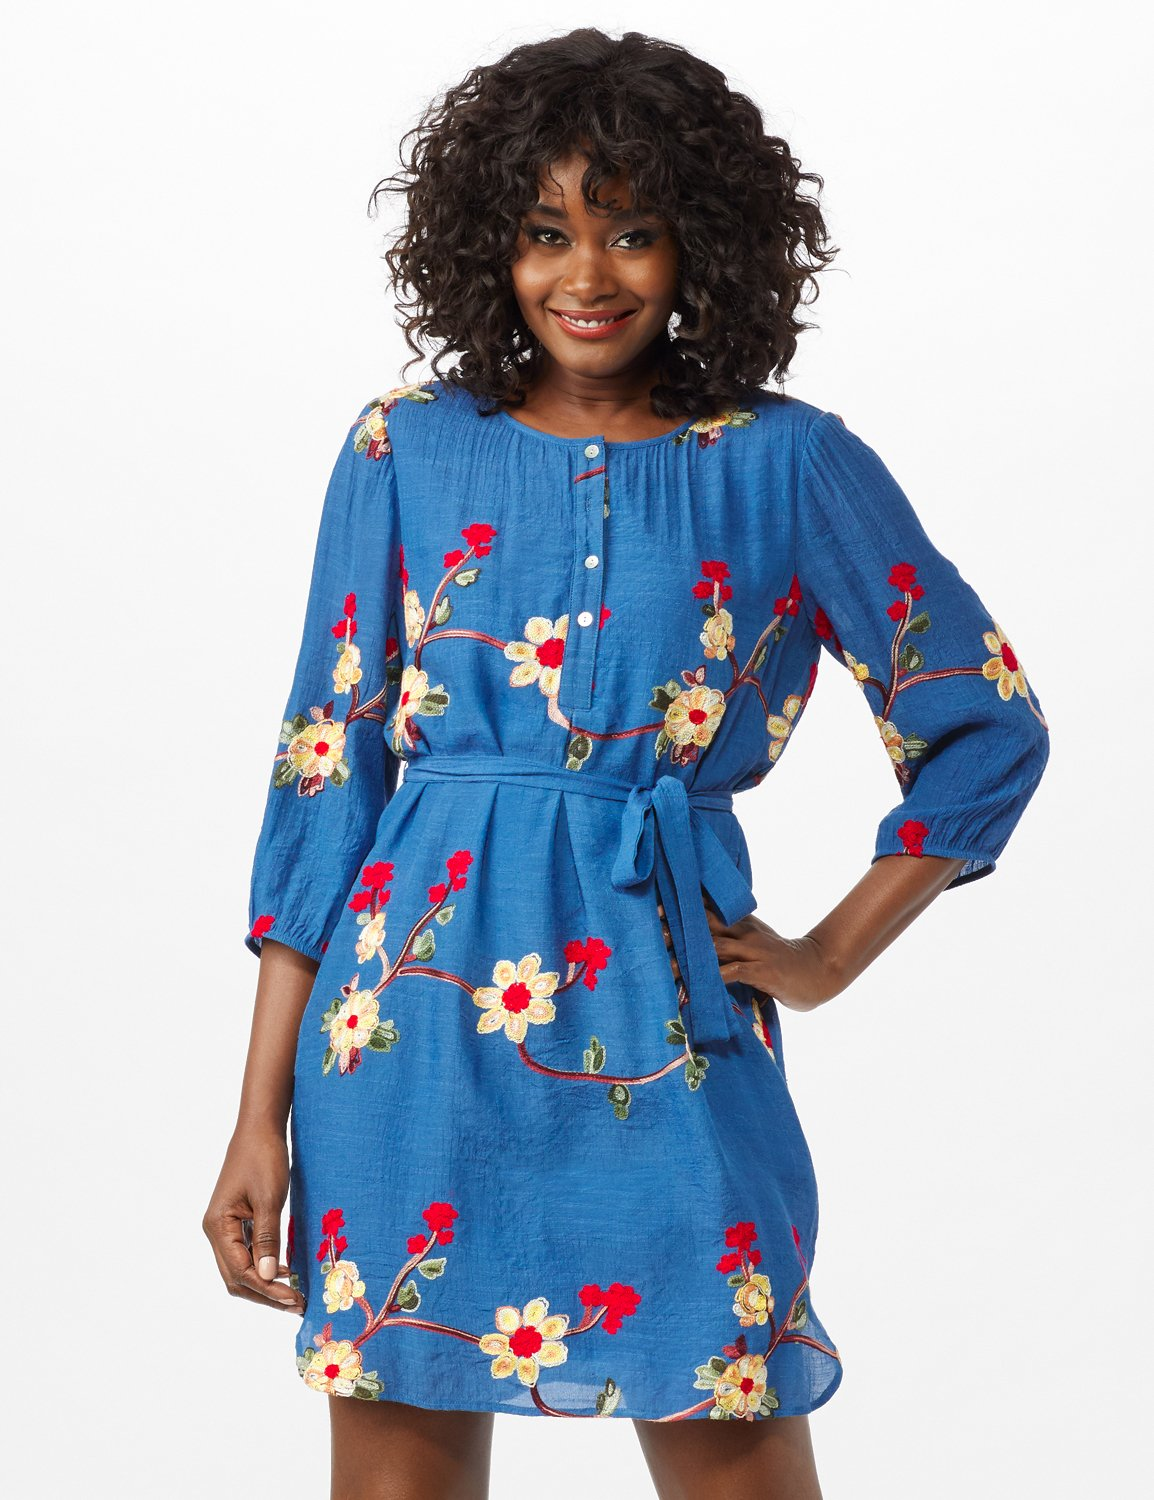 Scoop Neck With Embroidery Self Fabric Belted Dress -Chambray - Front